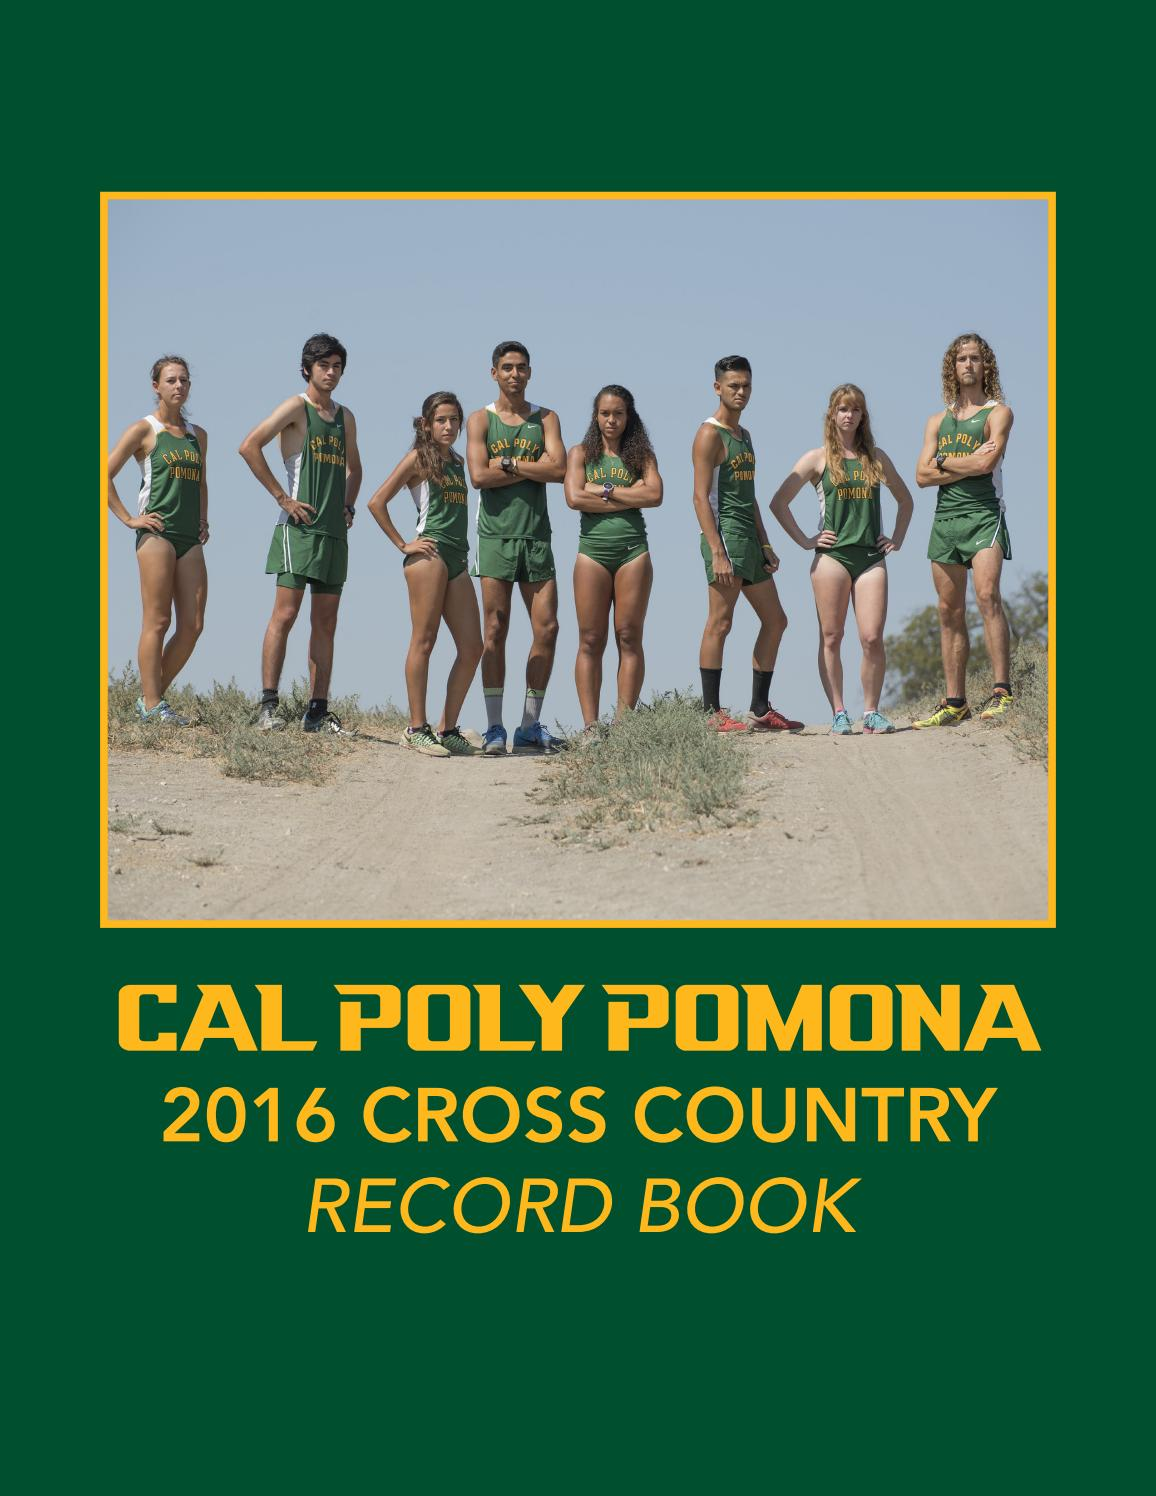 Cal Poly Pomona Cross Country 2016 Record Book By Billy Bronco Issuu